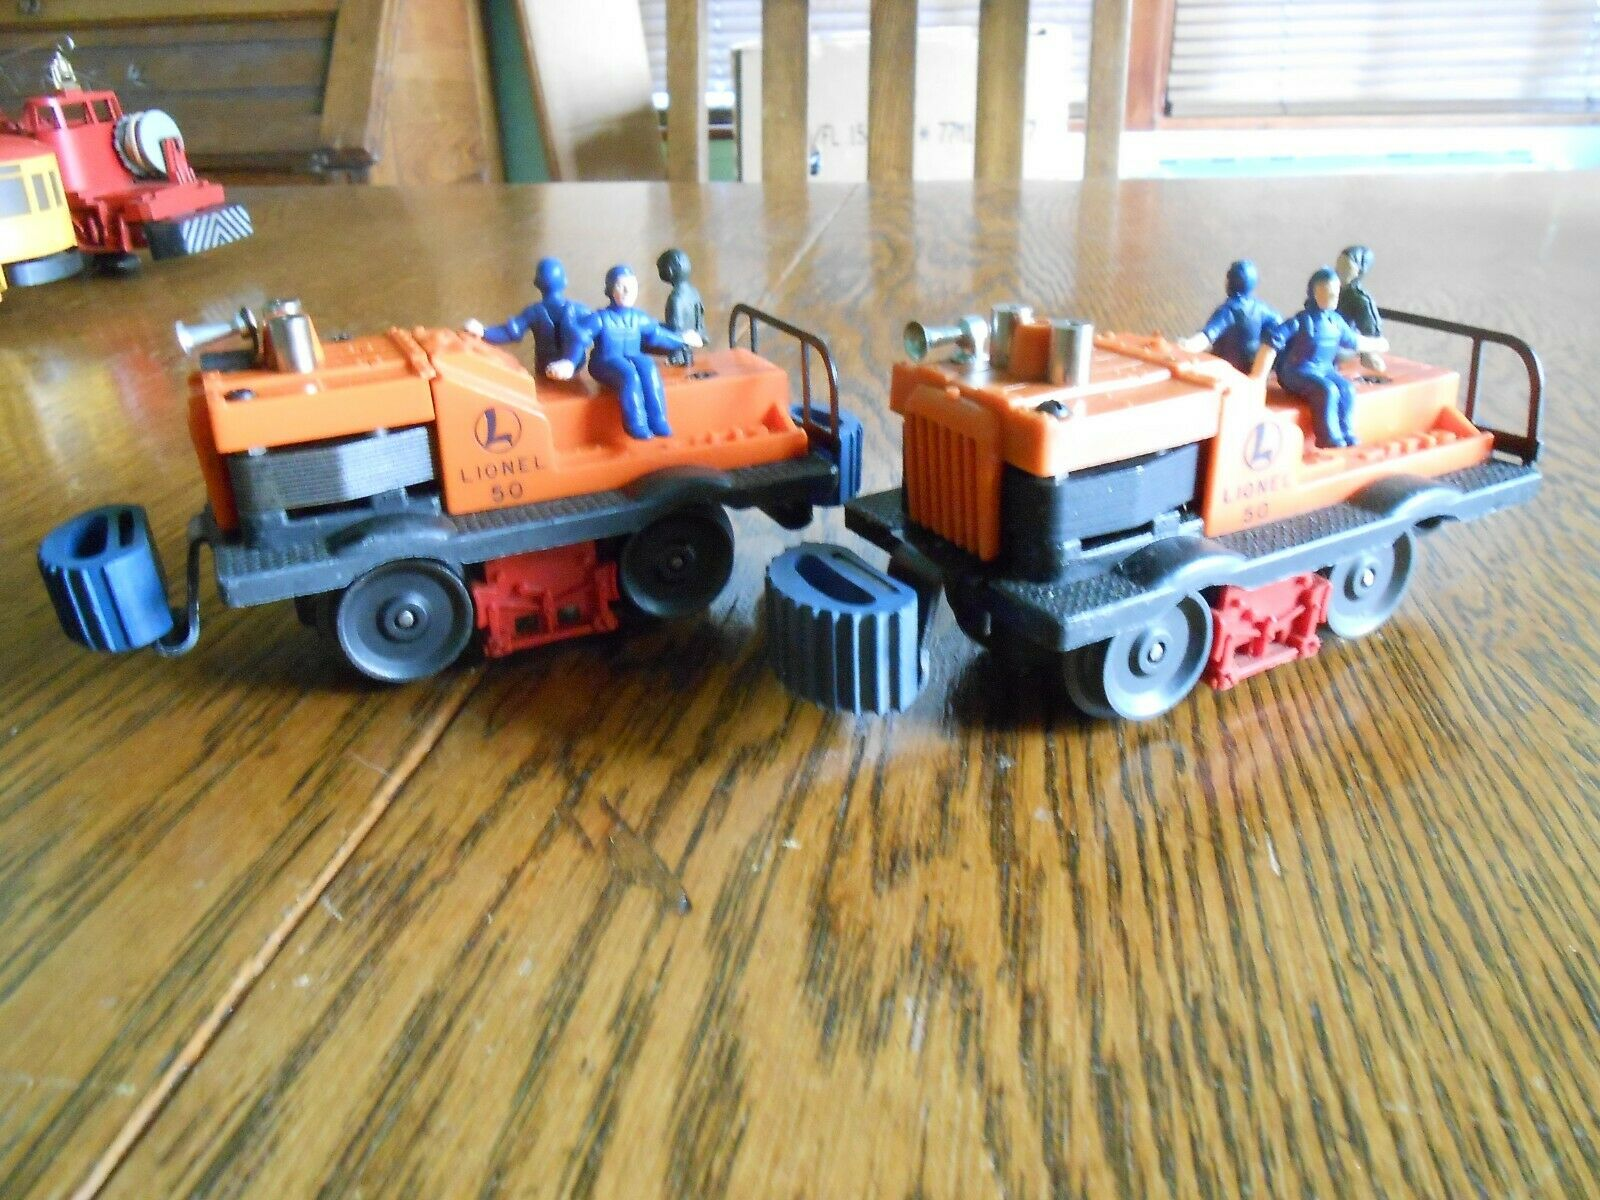 Two Lionel No. 50 Gang Cars - Completely Original